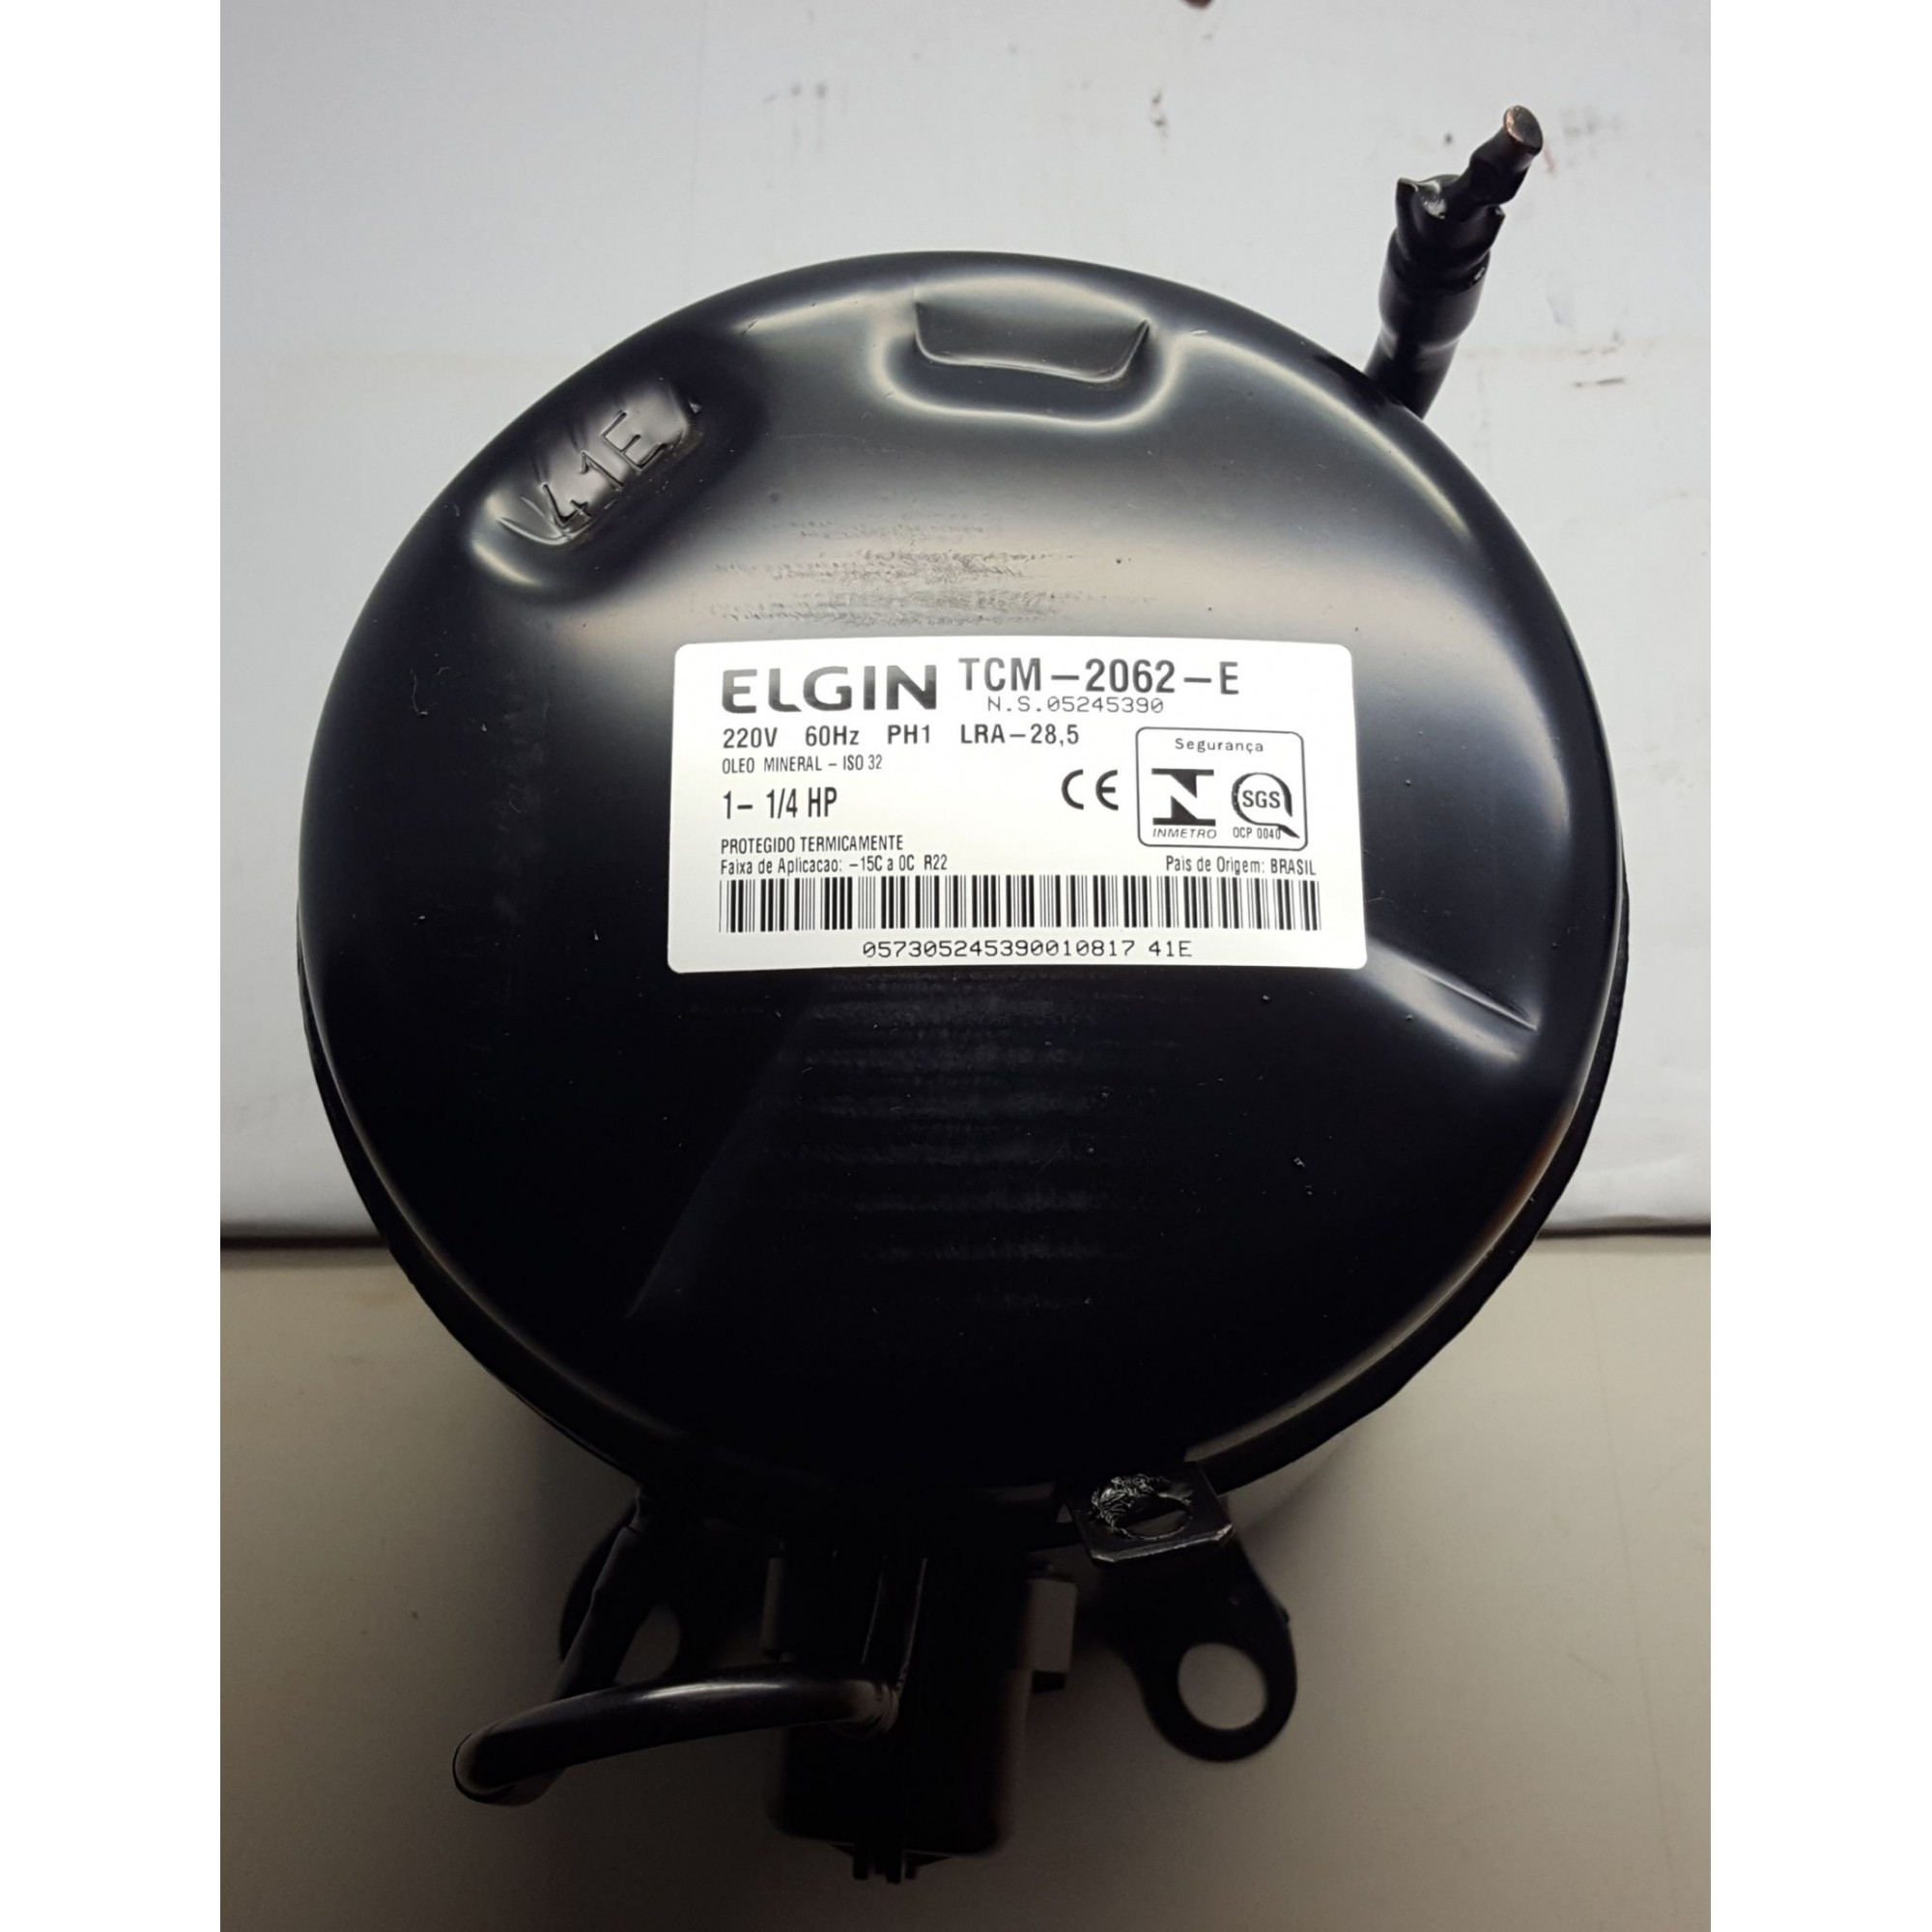 COMPRESSOR ELGIN 1 1/4 HP - TCM-2062-E - R22 (220v)